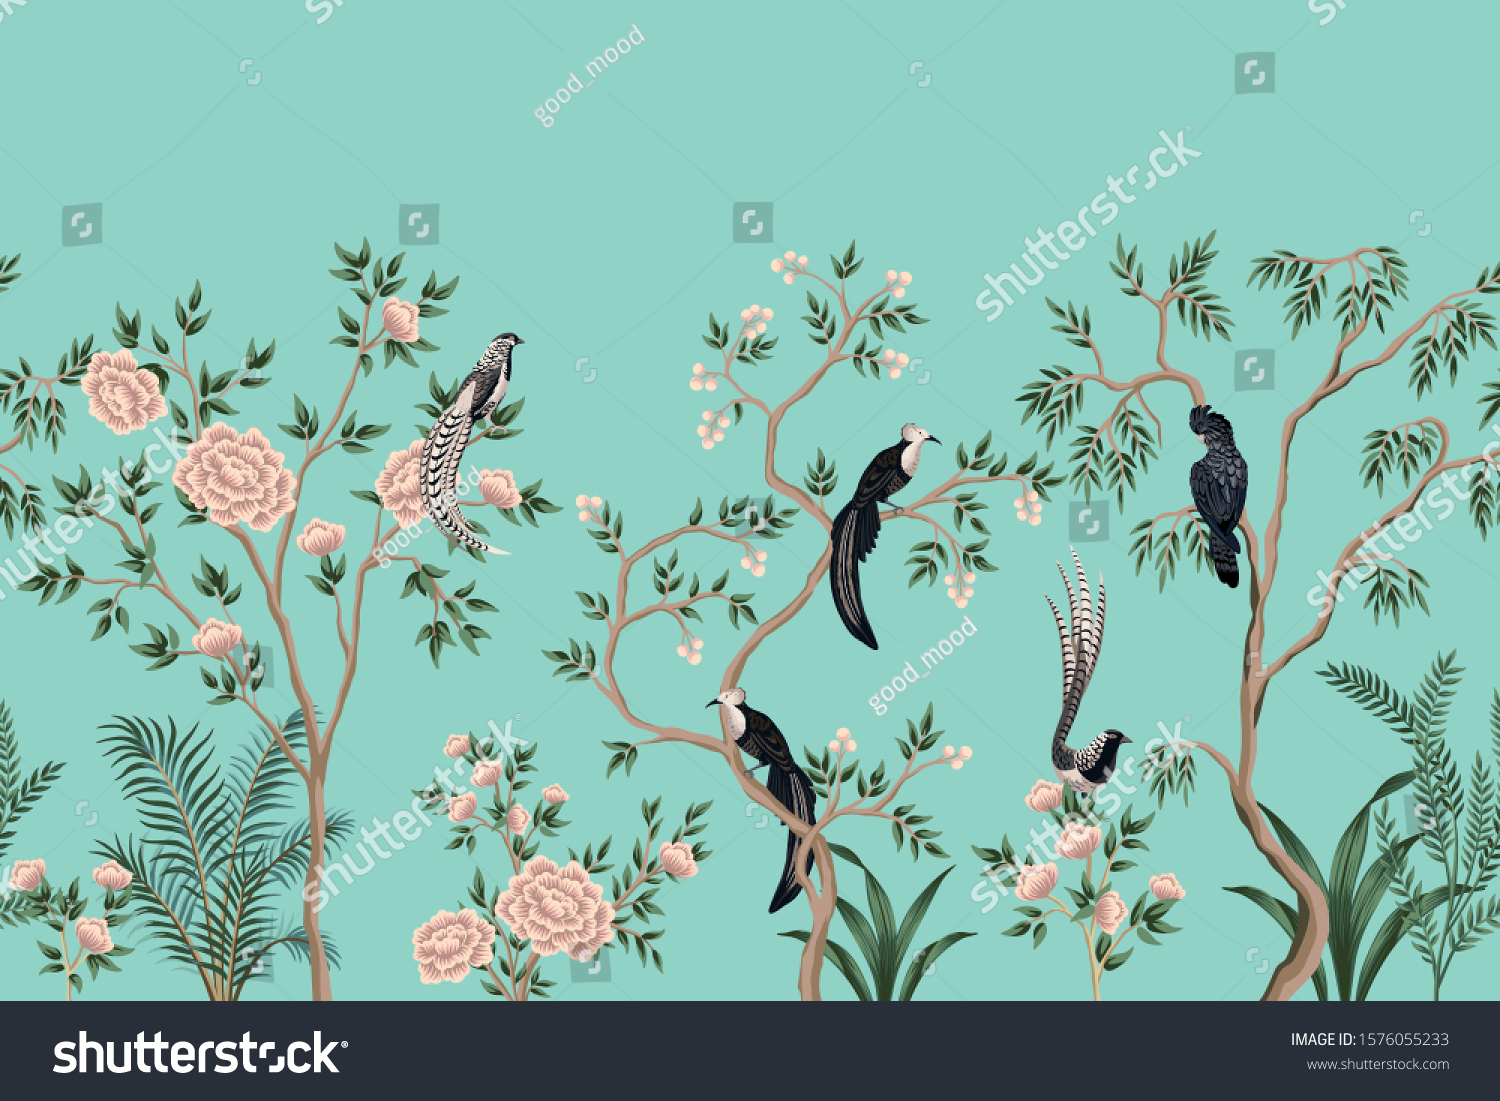 Vintage Chinoiserie Floral Rose Tree Plant Stock Vector Royalty Free 1576055233